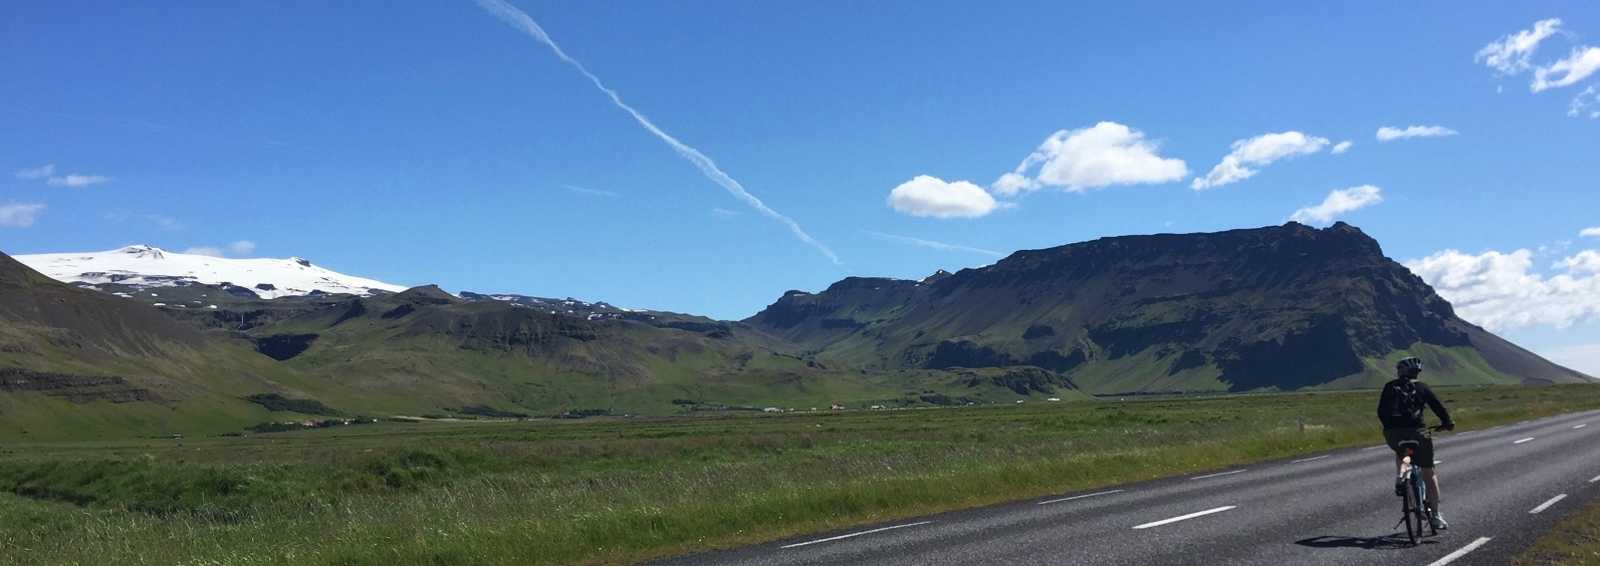 On the road to Skoga, coastal road, between the North Atlantic and the Icecaps of southern Iceland